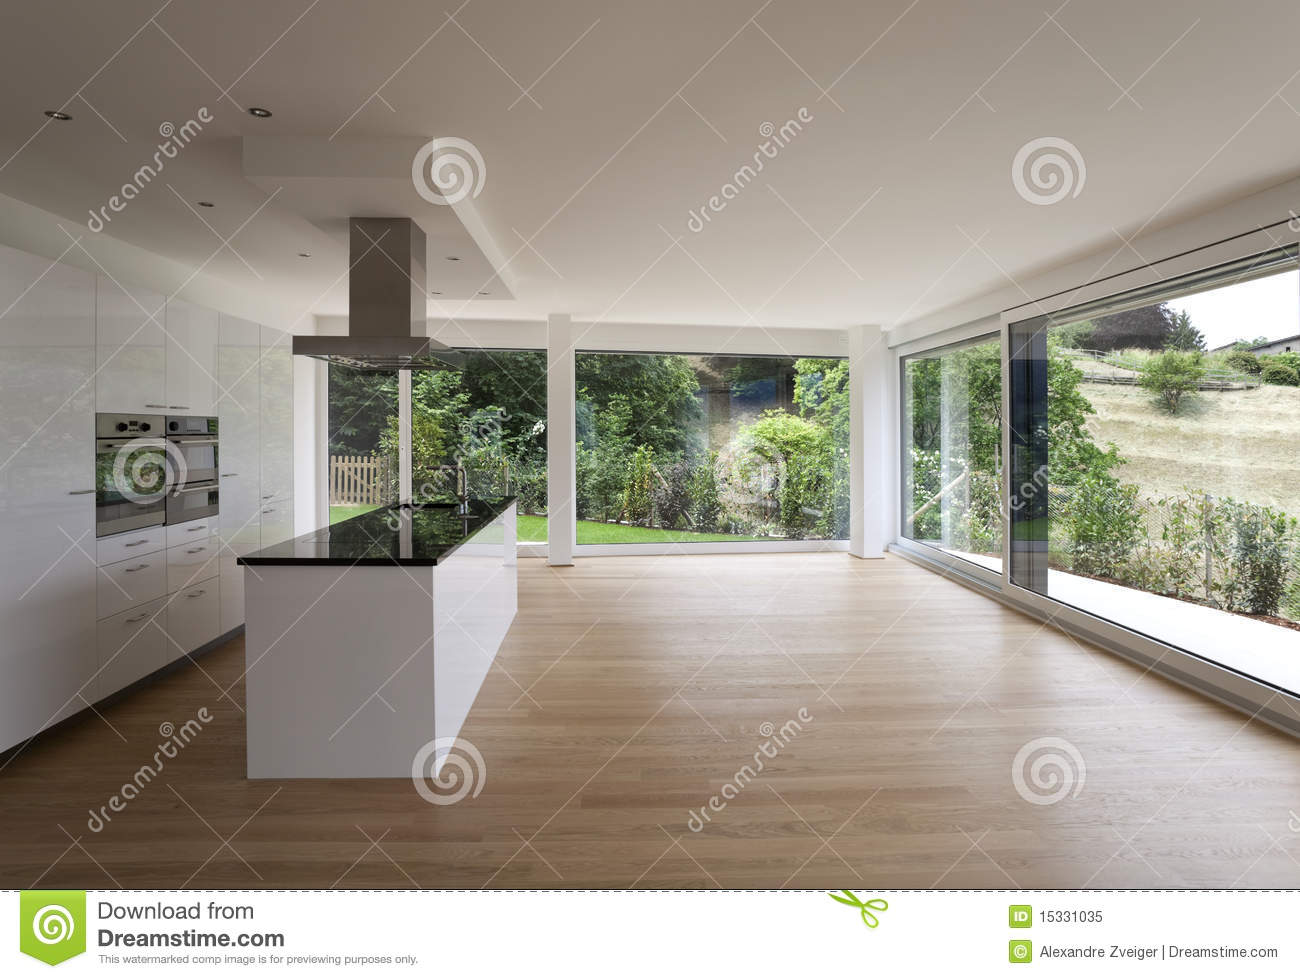 Bel int rieur d 39 une maison moderne image stock image for Interieur de maison contemporaine photo